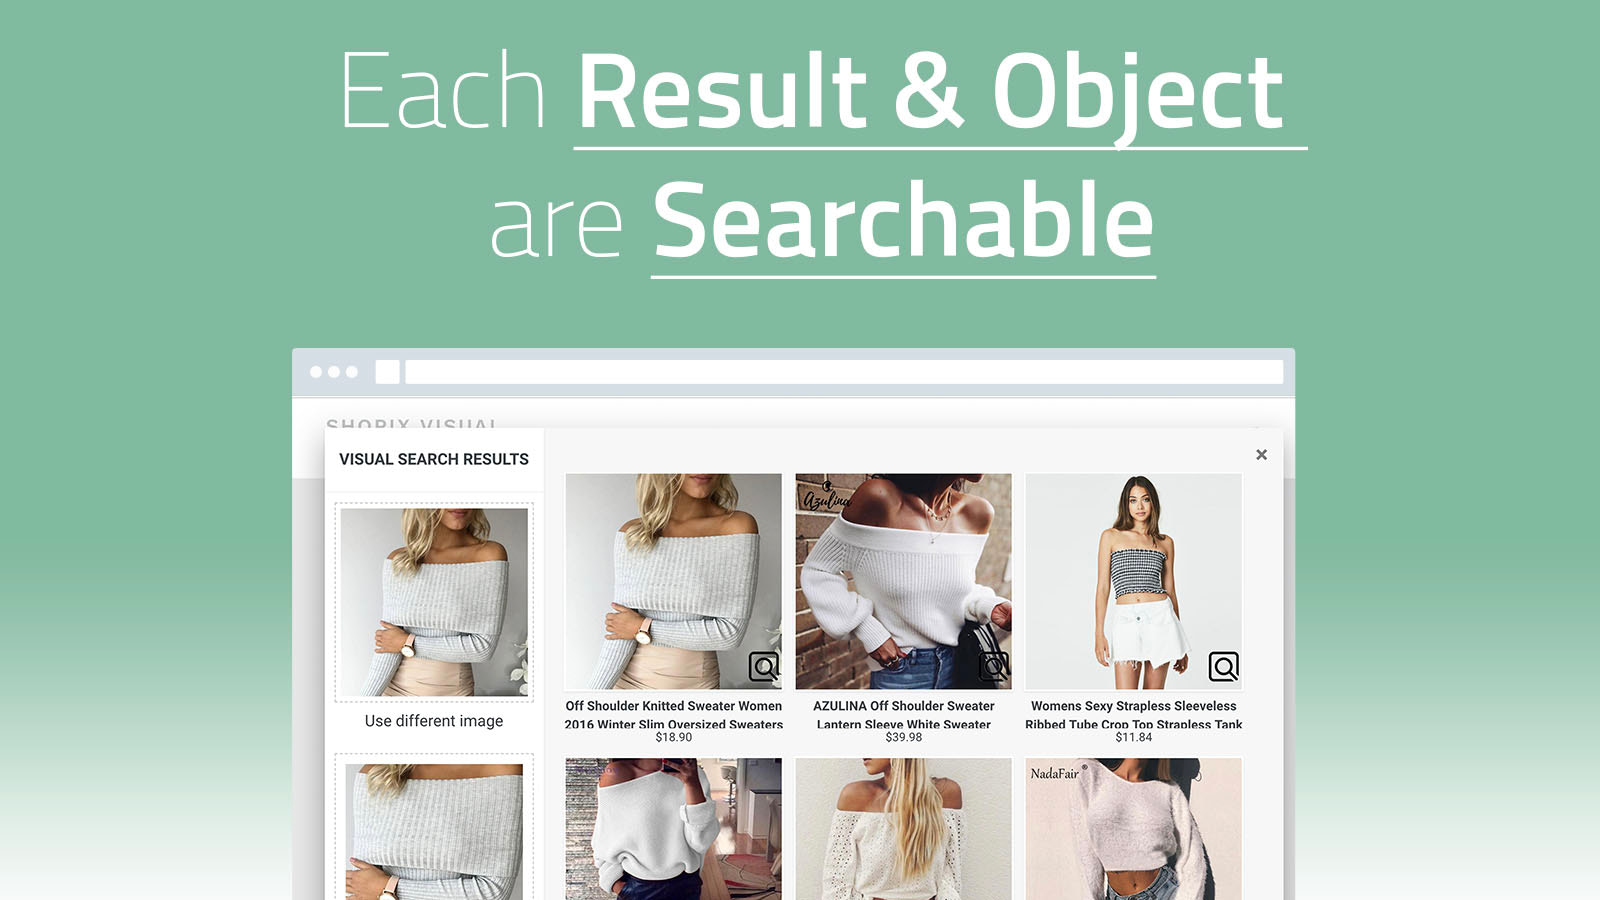 Visual search results with searchable result items & objects